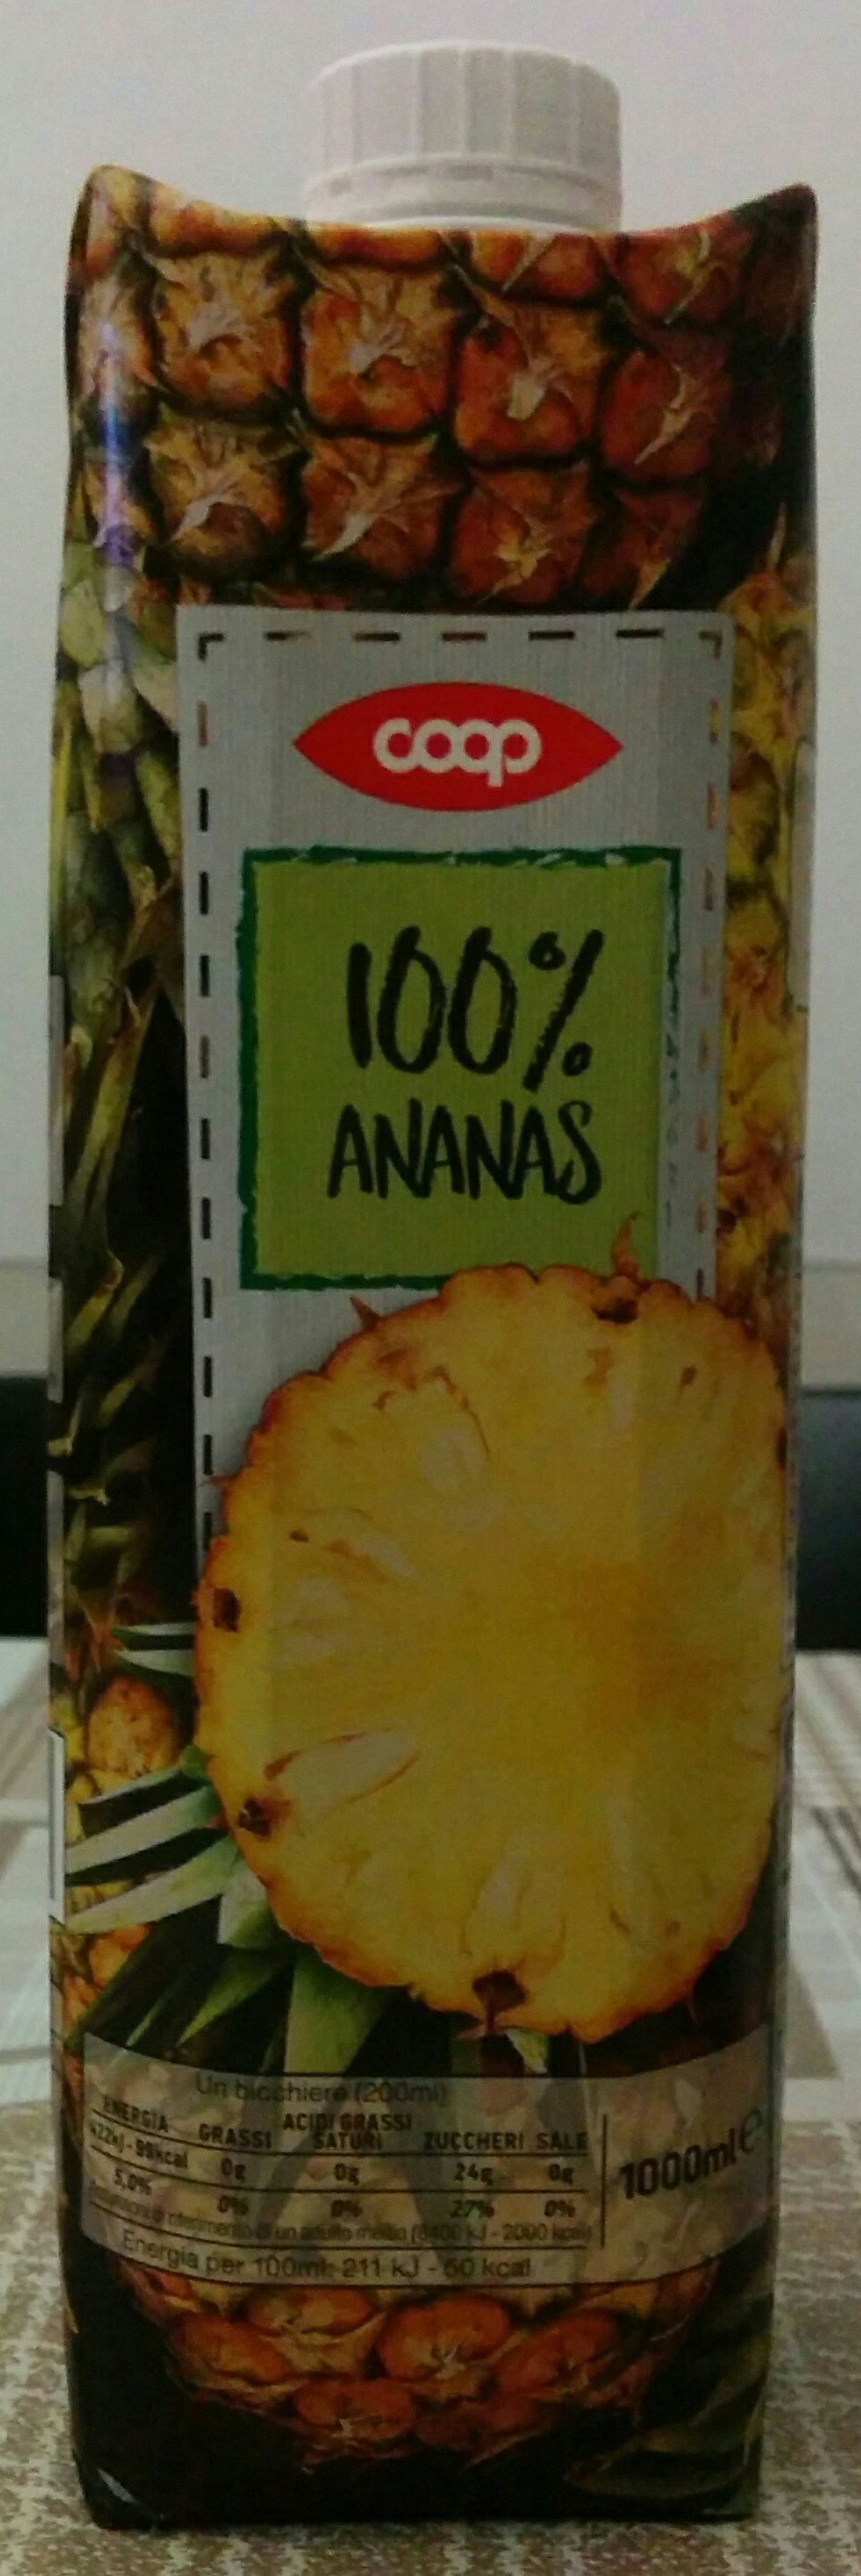 100% Ananas - Product - it